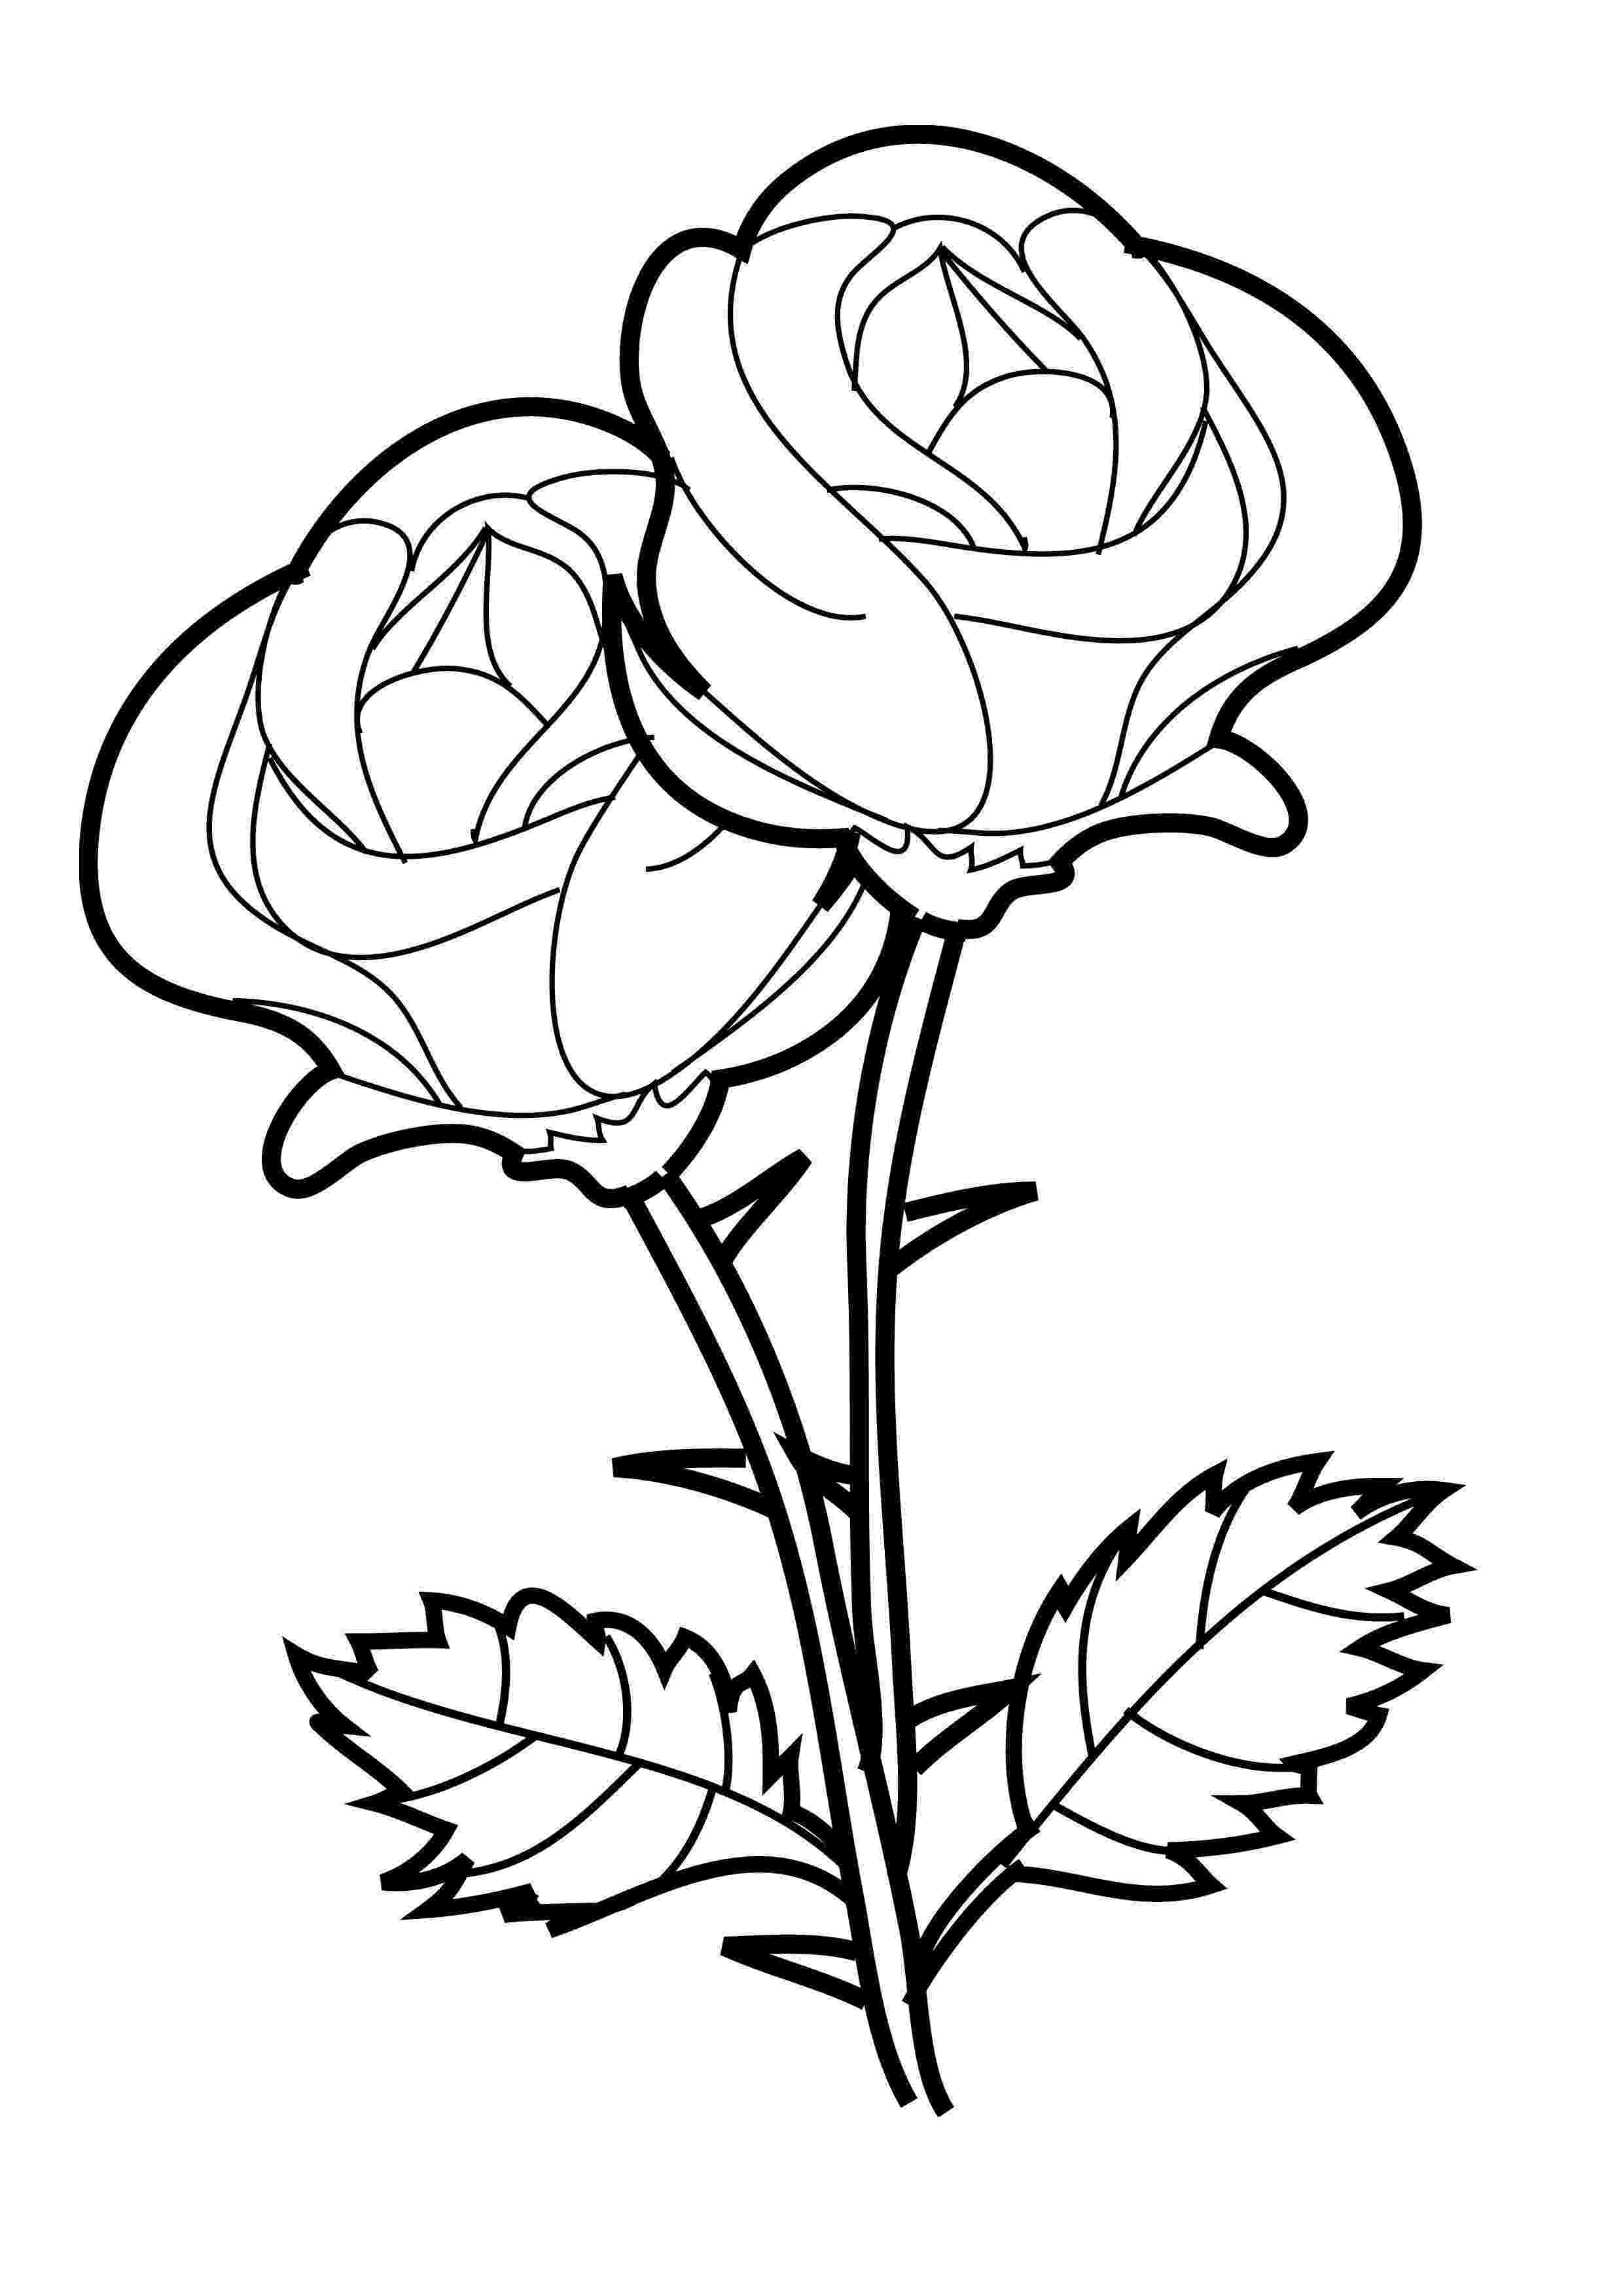 printable roses free printable roses coloring pages for kids printable roses